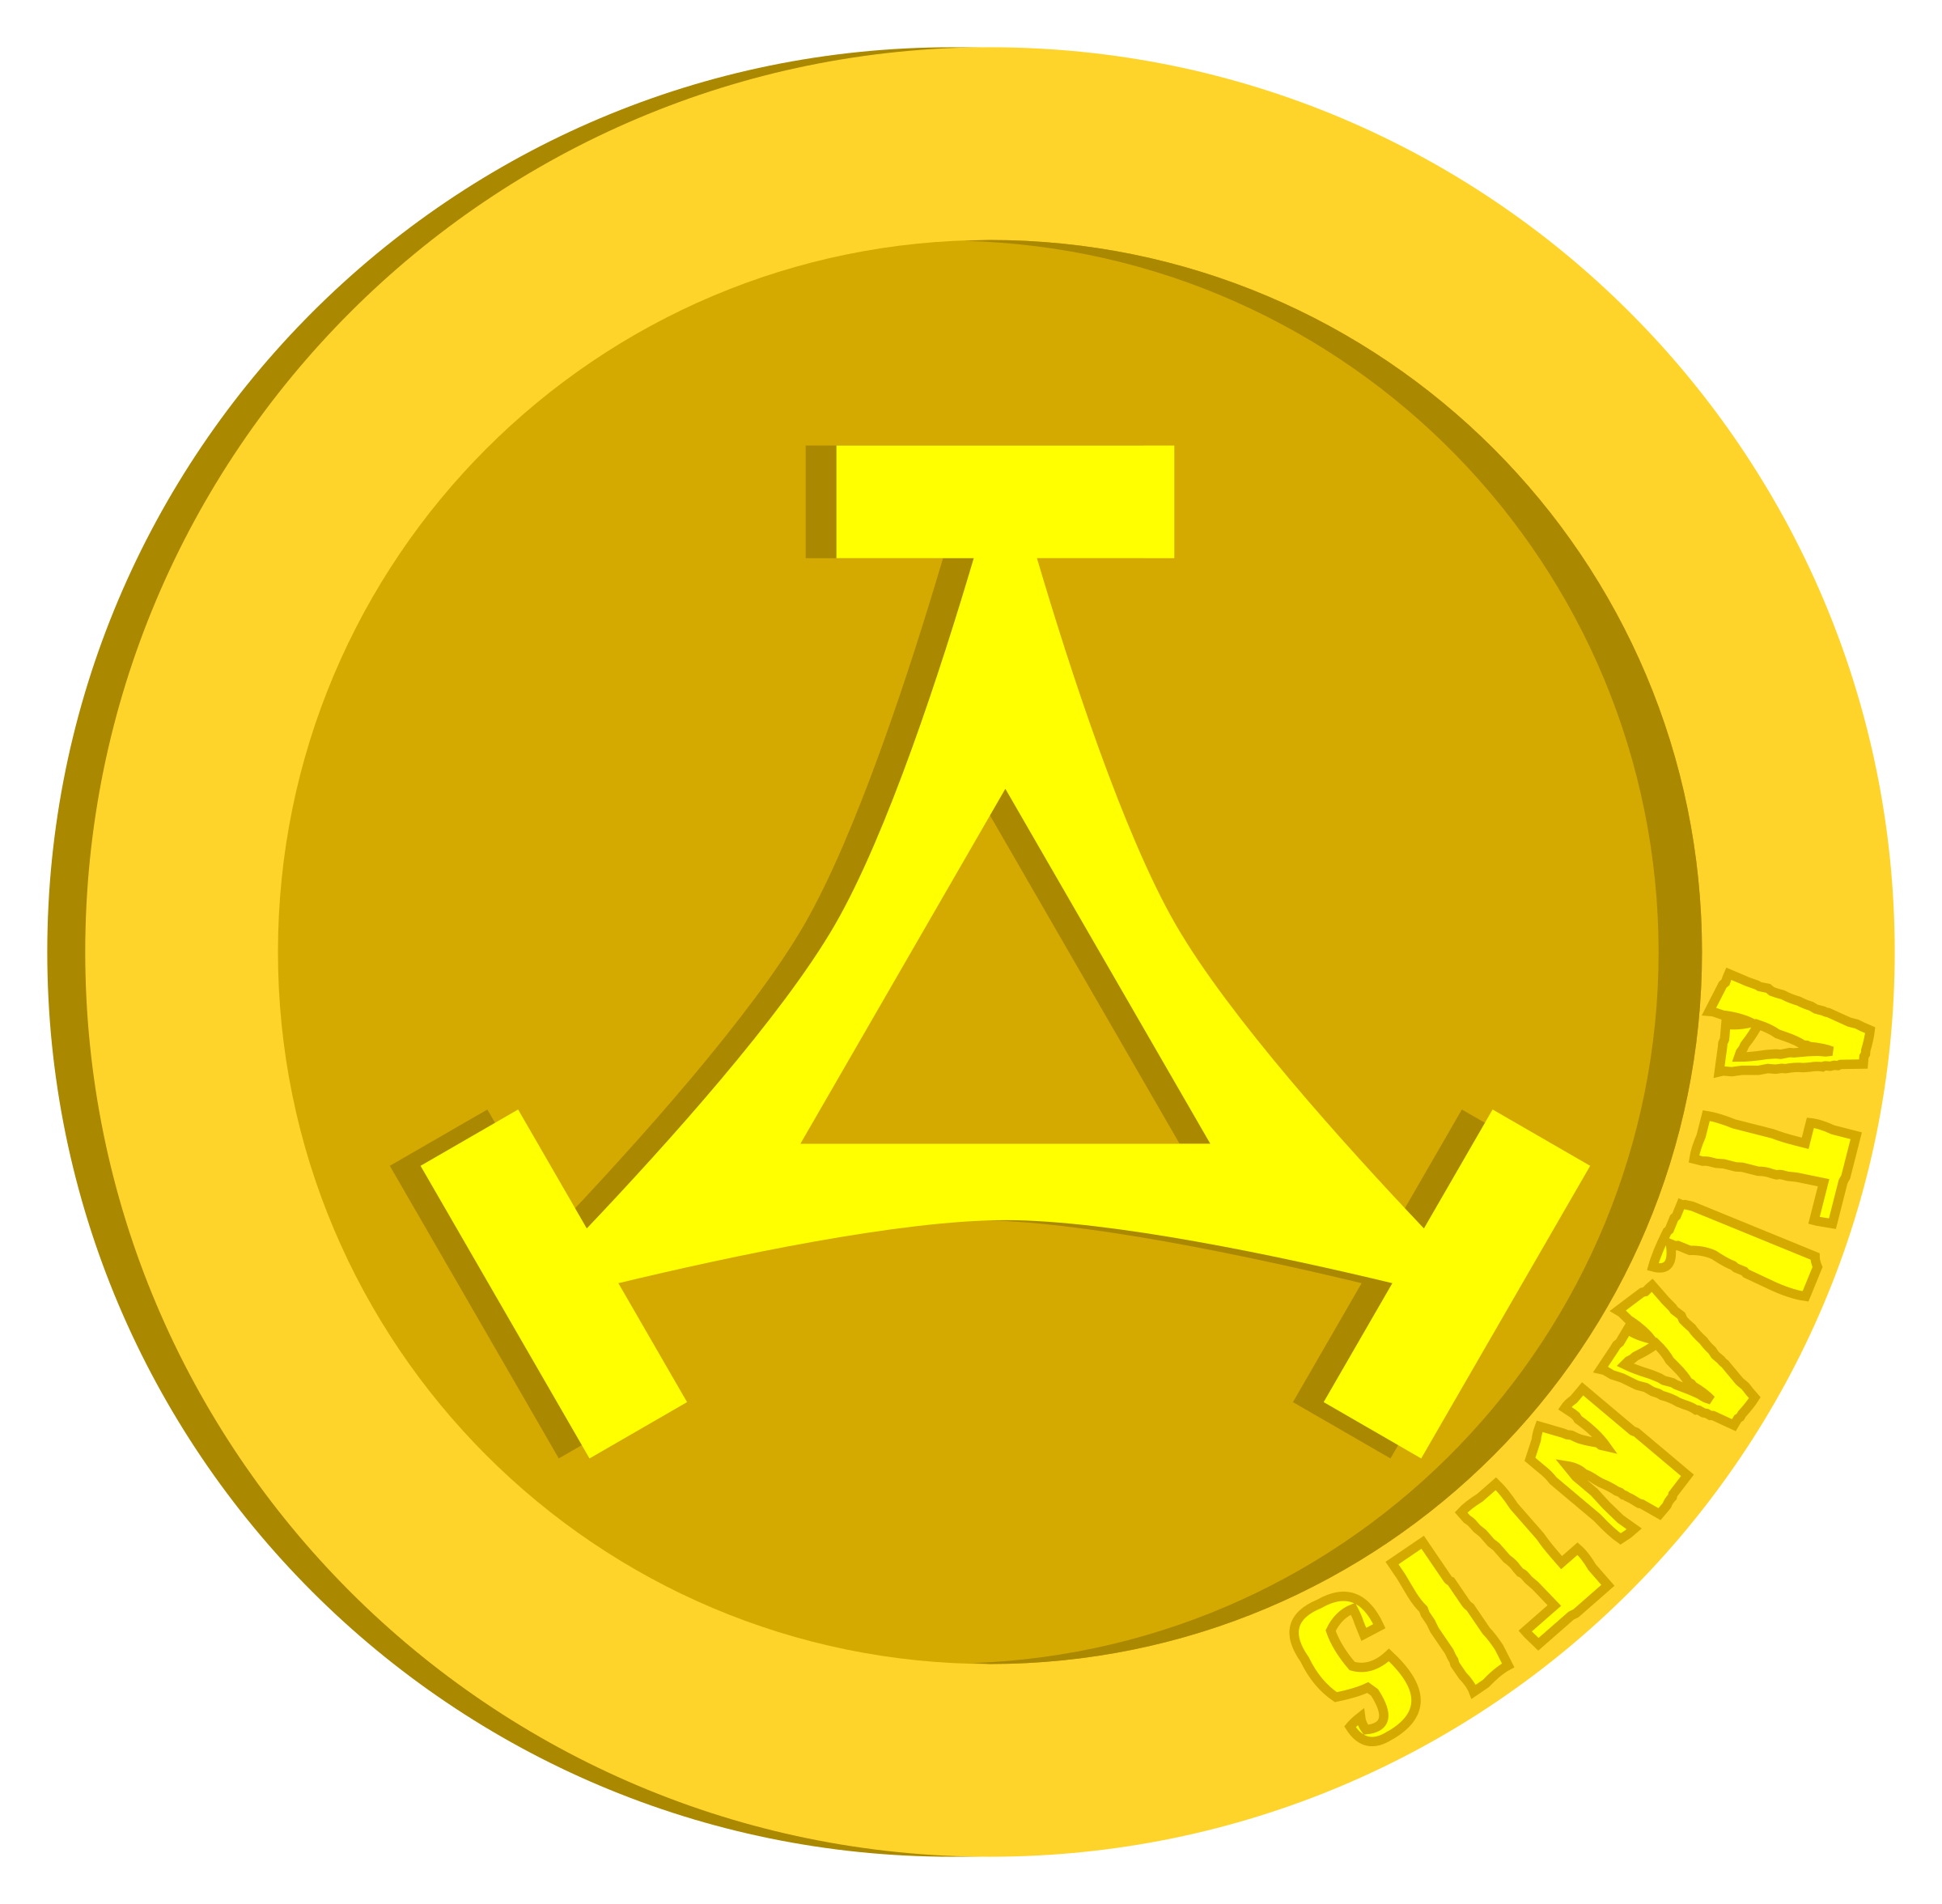 Atlantis Coin by belthsazar_liem